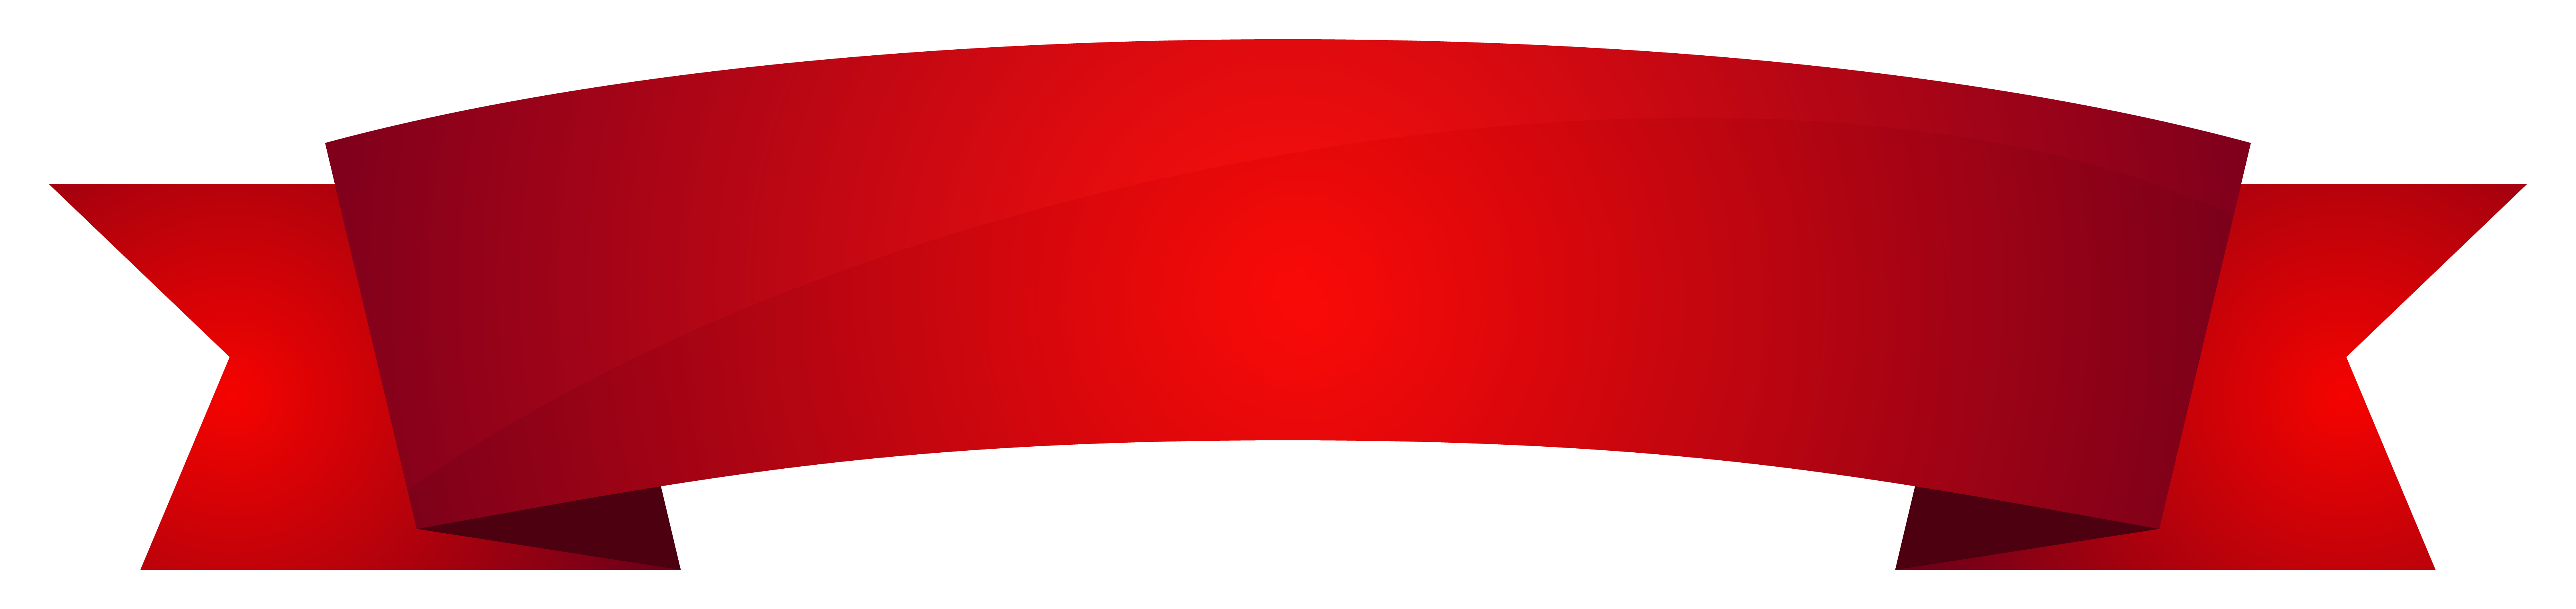 Banner red clipart image